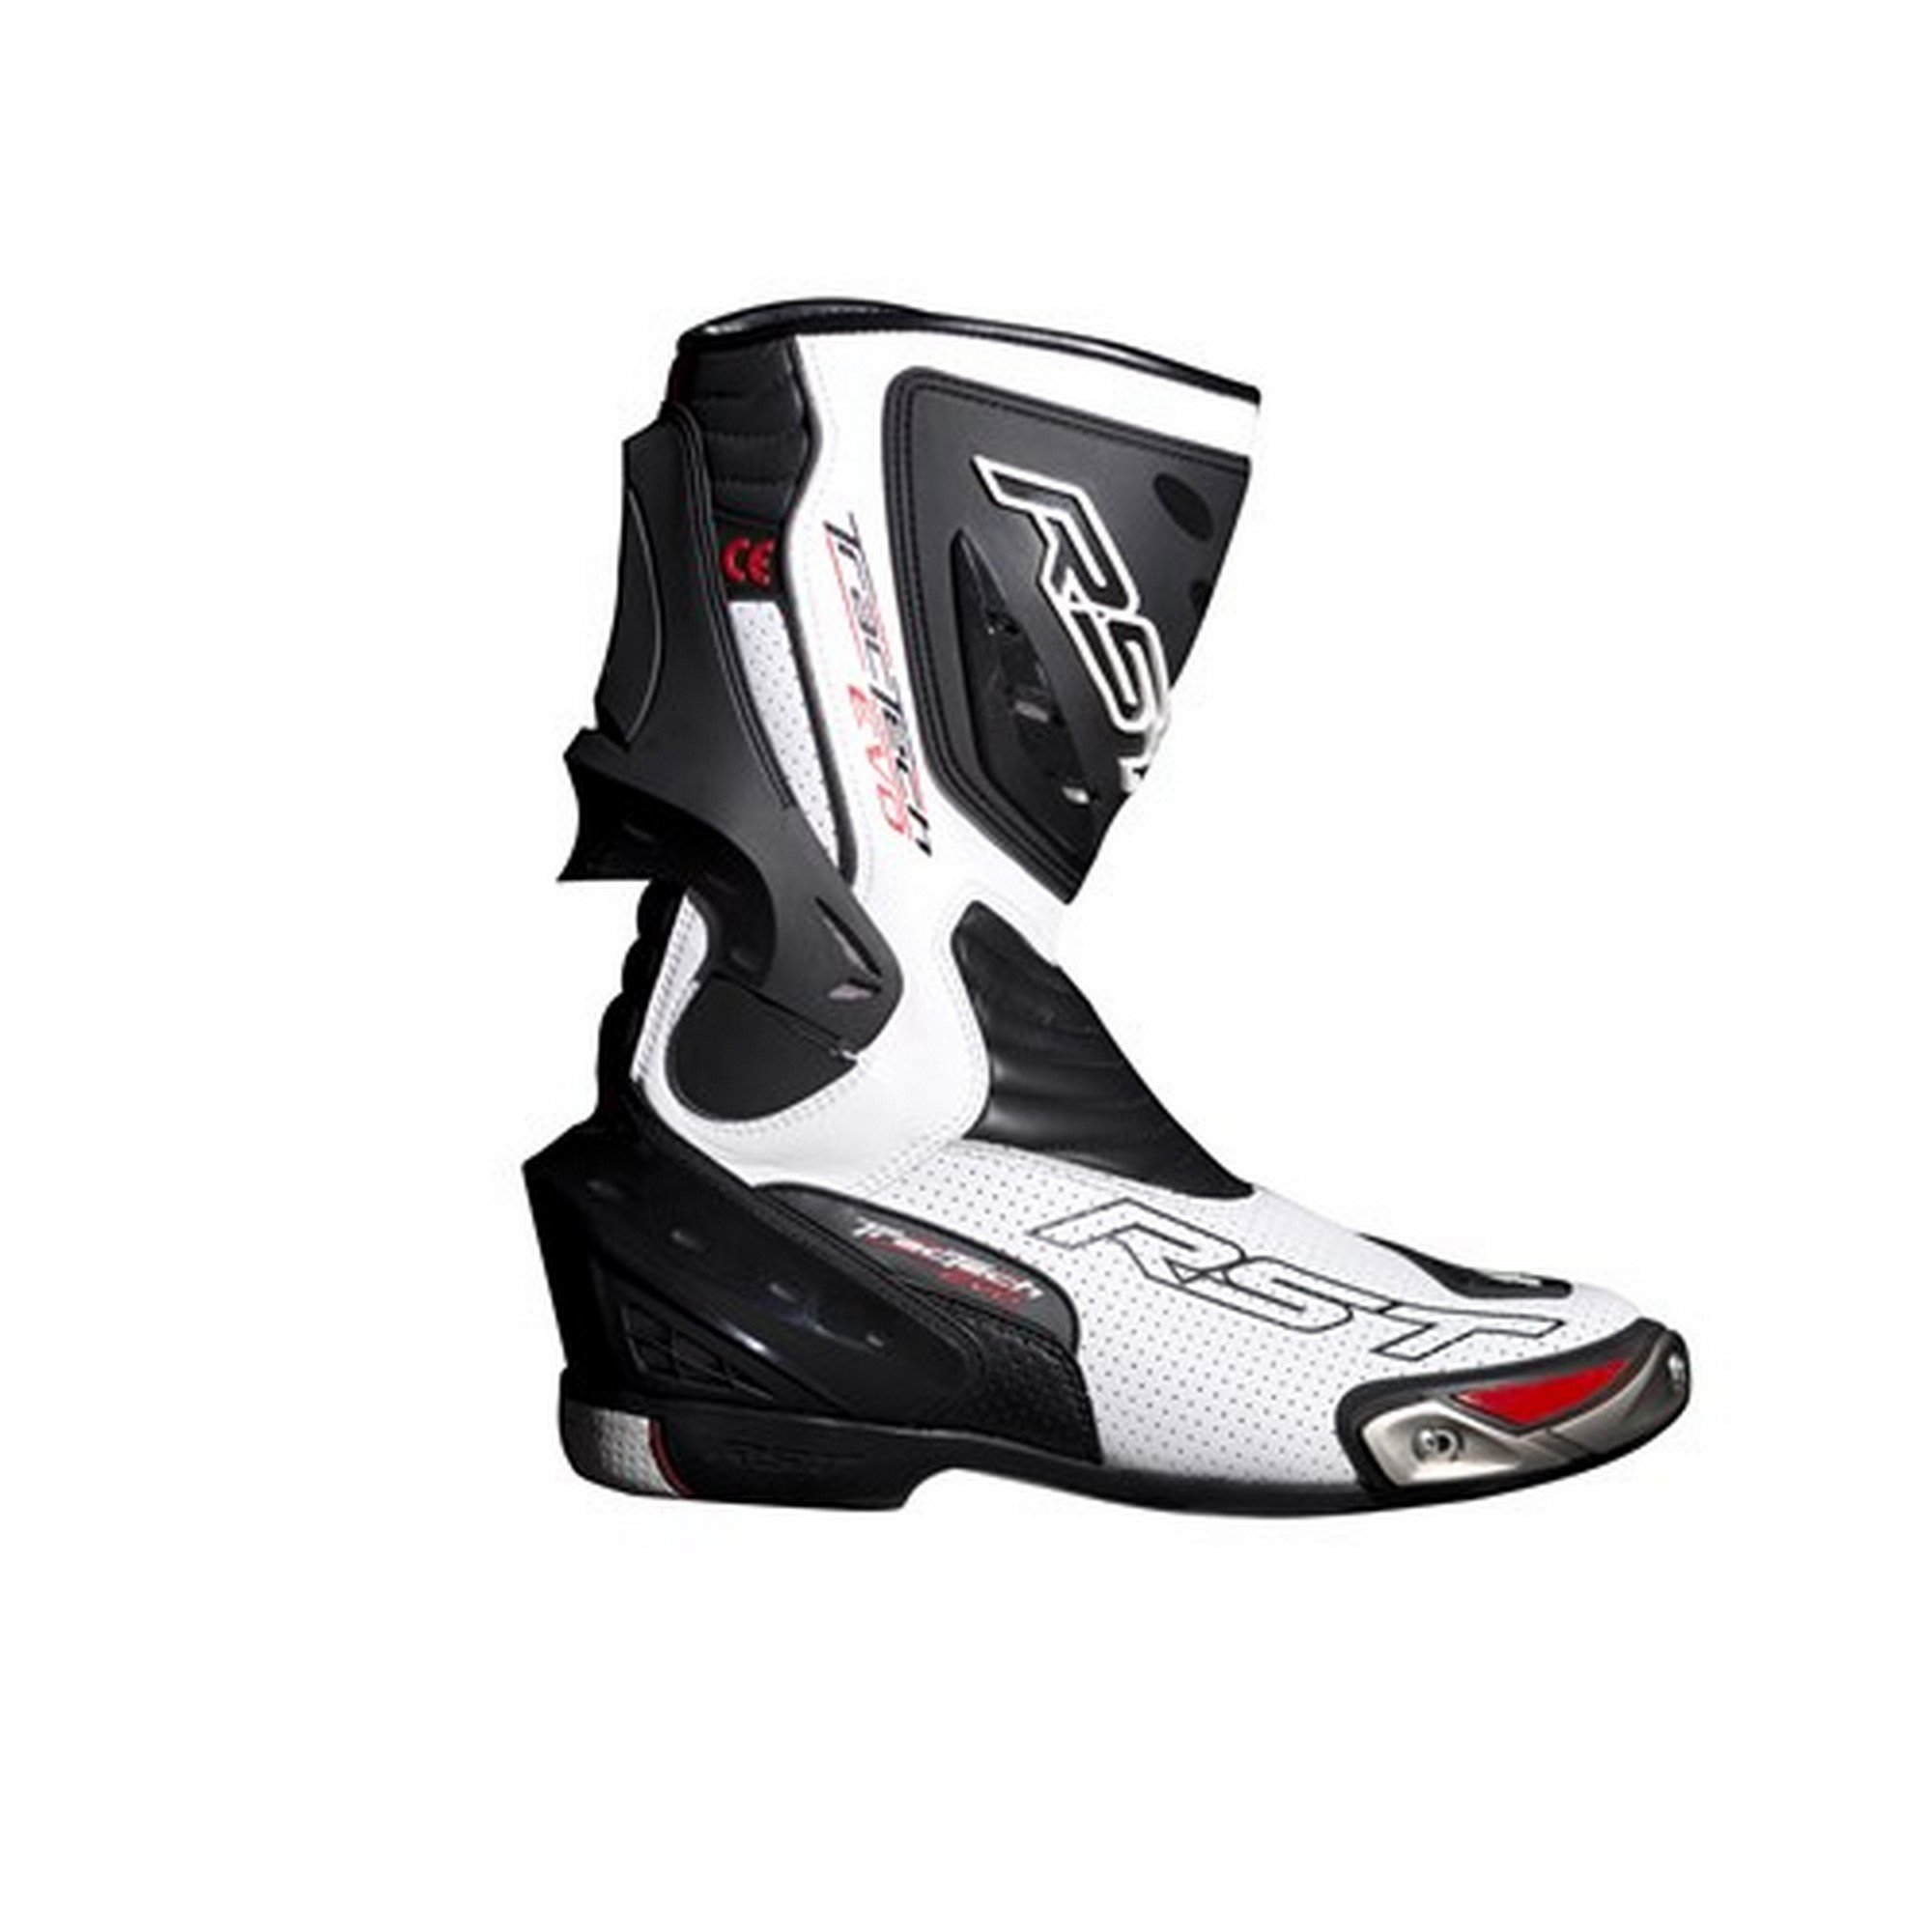 RST Tractech Evo 1516 Motorcycle Sports Race Boot White